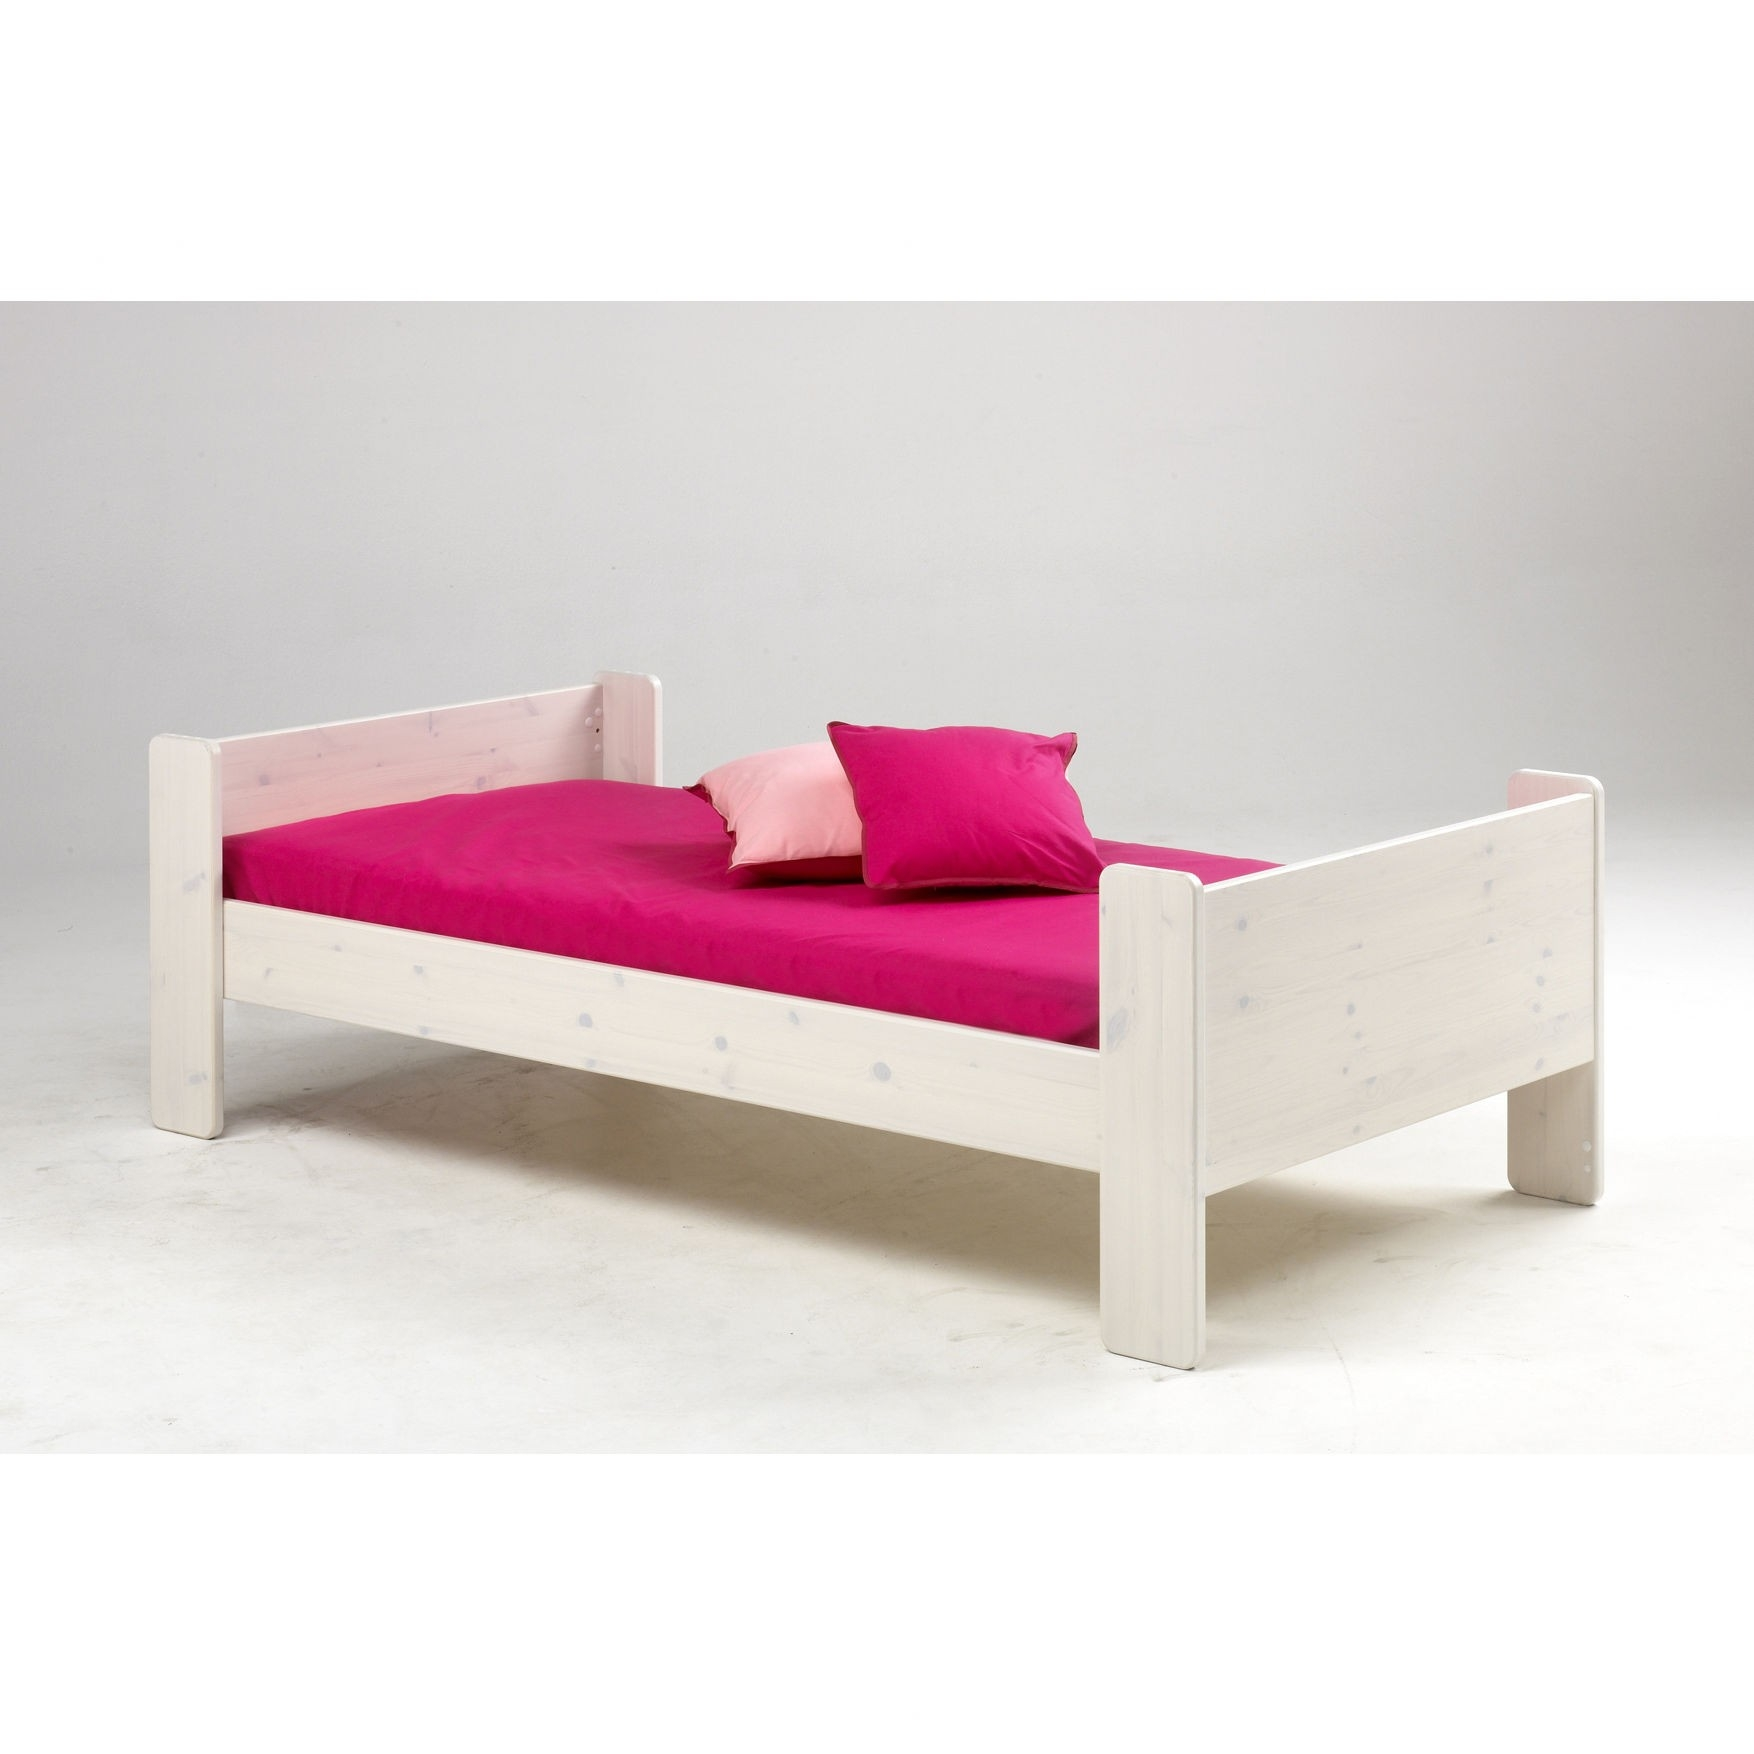 Low Single Bed Frame For Toddler